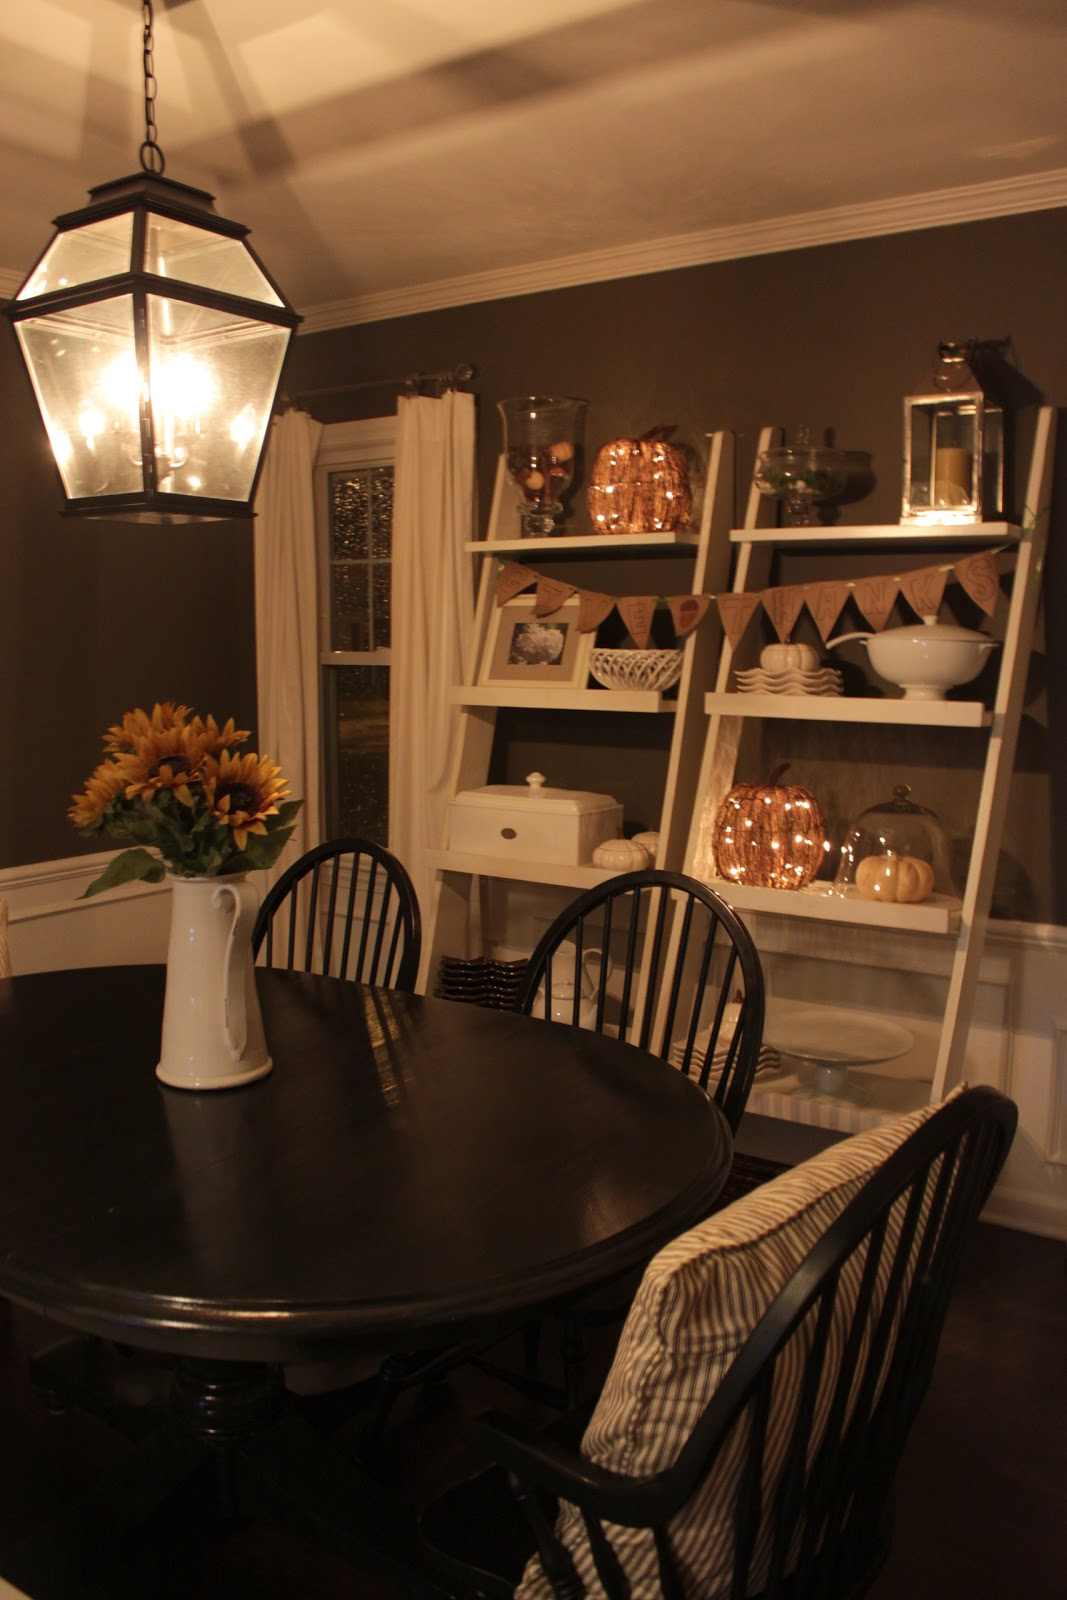 dining rooms pinterest high definition pics | The Fat Hydrangea: Dining Room Thanksgiving Decor + My ...